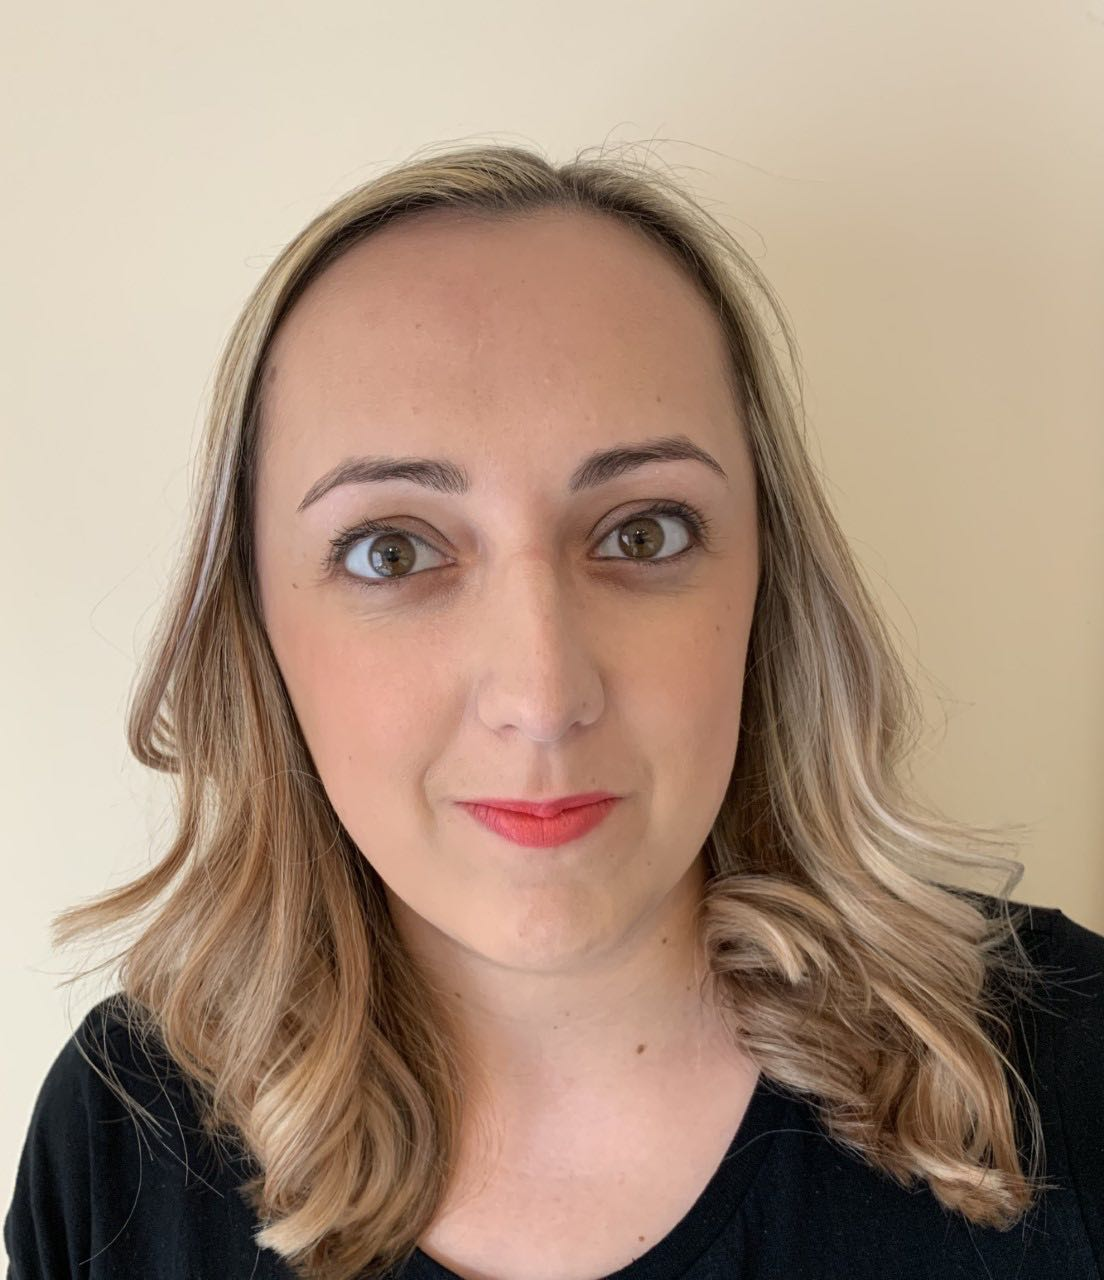 Emma is the newest member of the team, joining us in May 2019. Emma brings with her a wealth of experience and is a core part of the team.